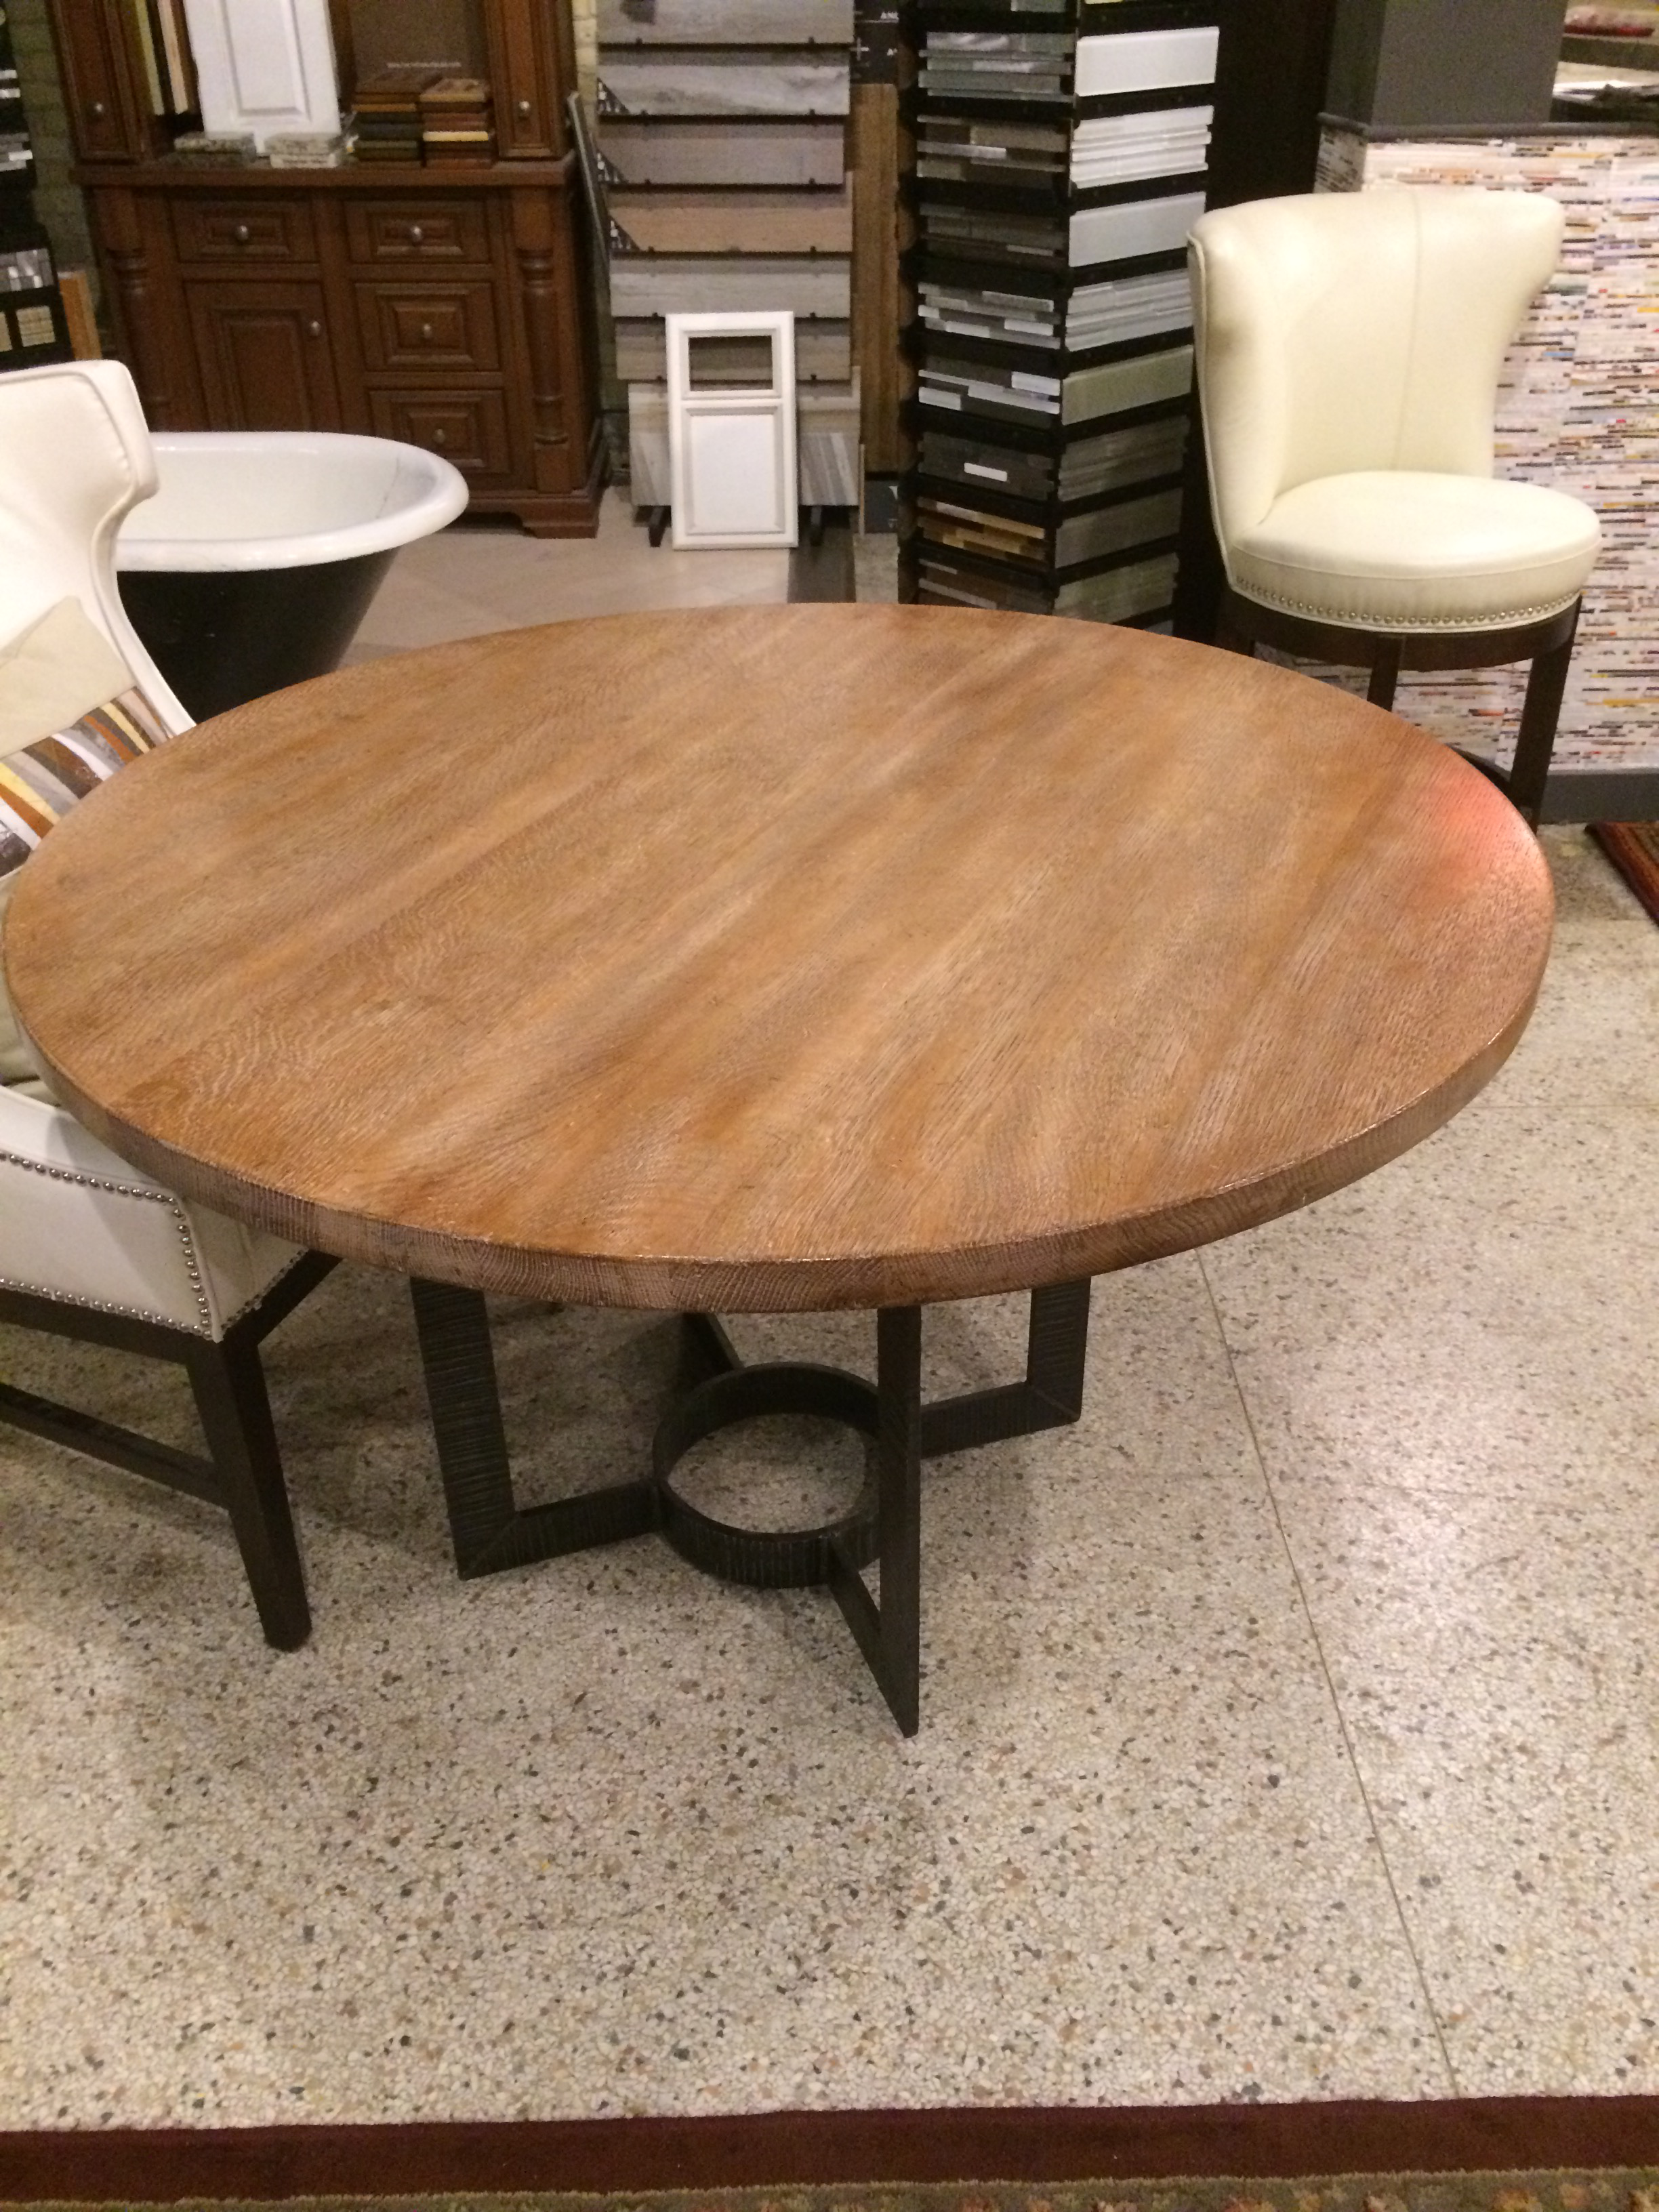 Perfect Wright Table Company Cerused Oak Dining Table   Image 5 Of 7